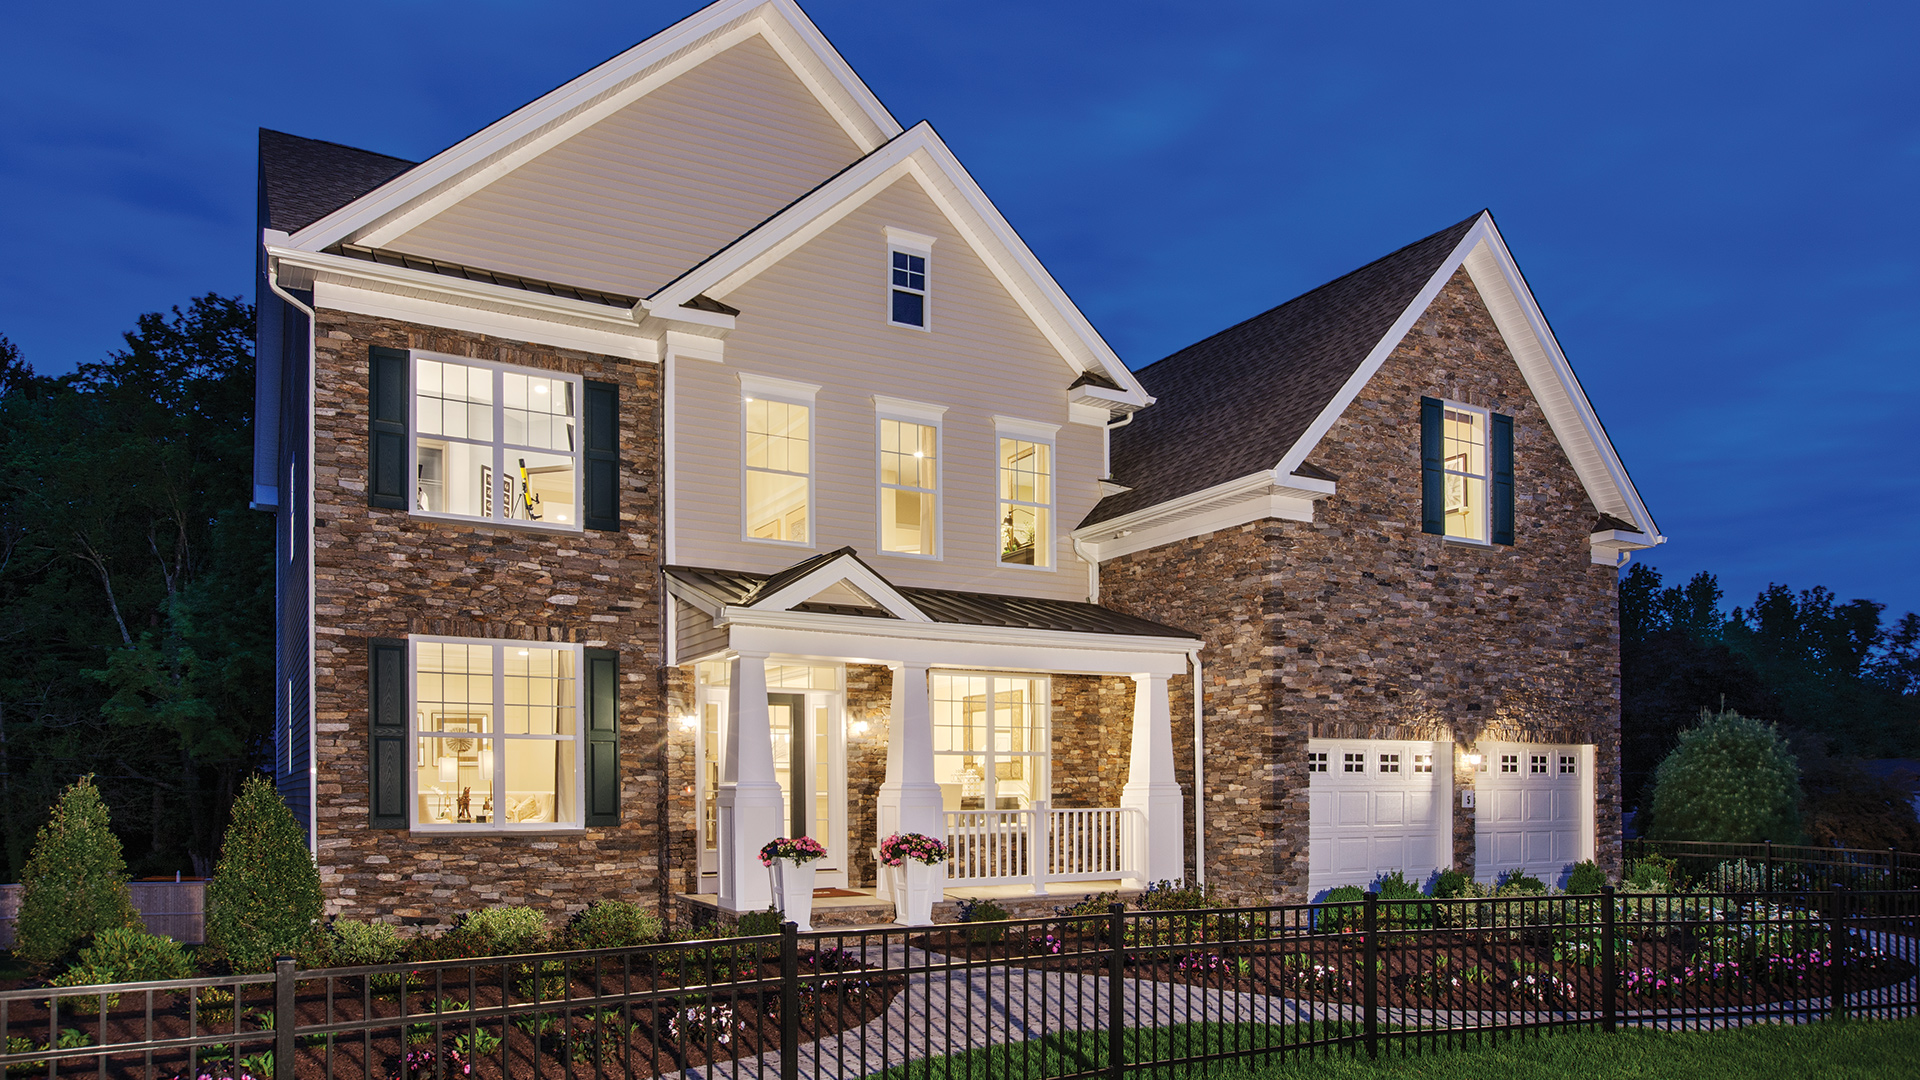 Ellsworth II Country Manor Model Home - Open Daily 11 am to 6 pm!